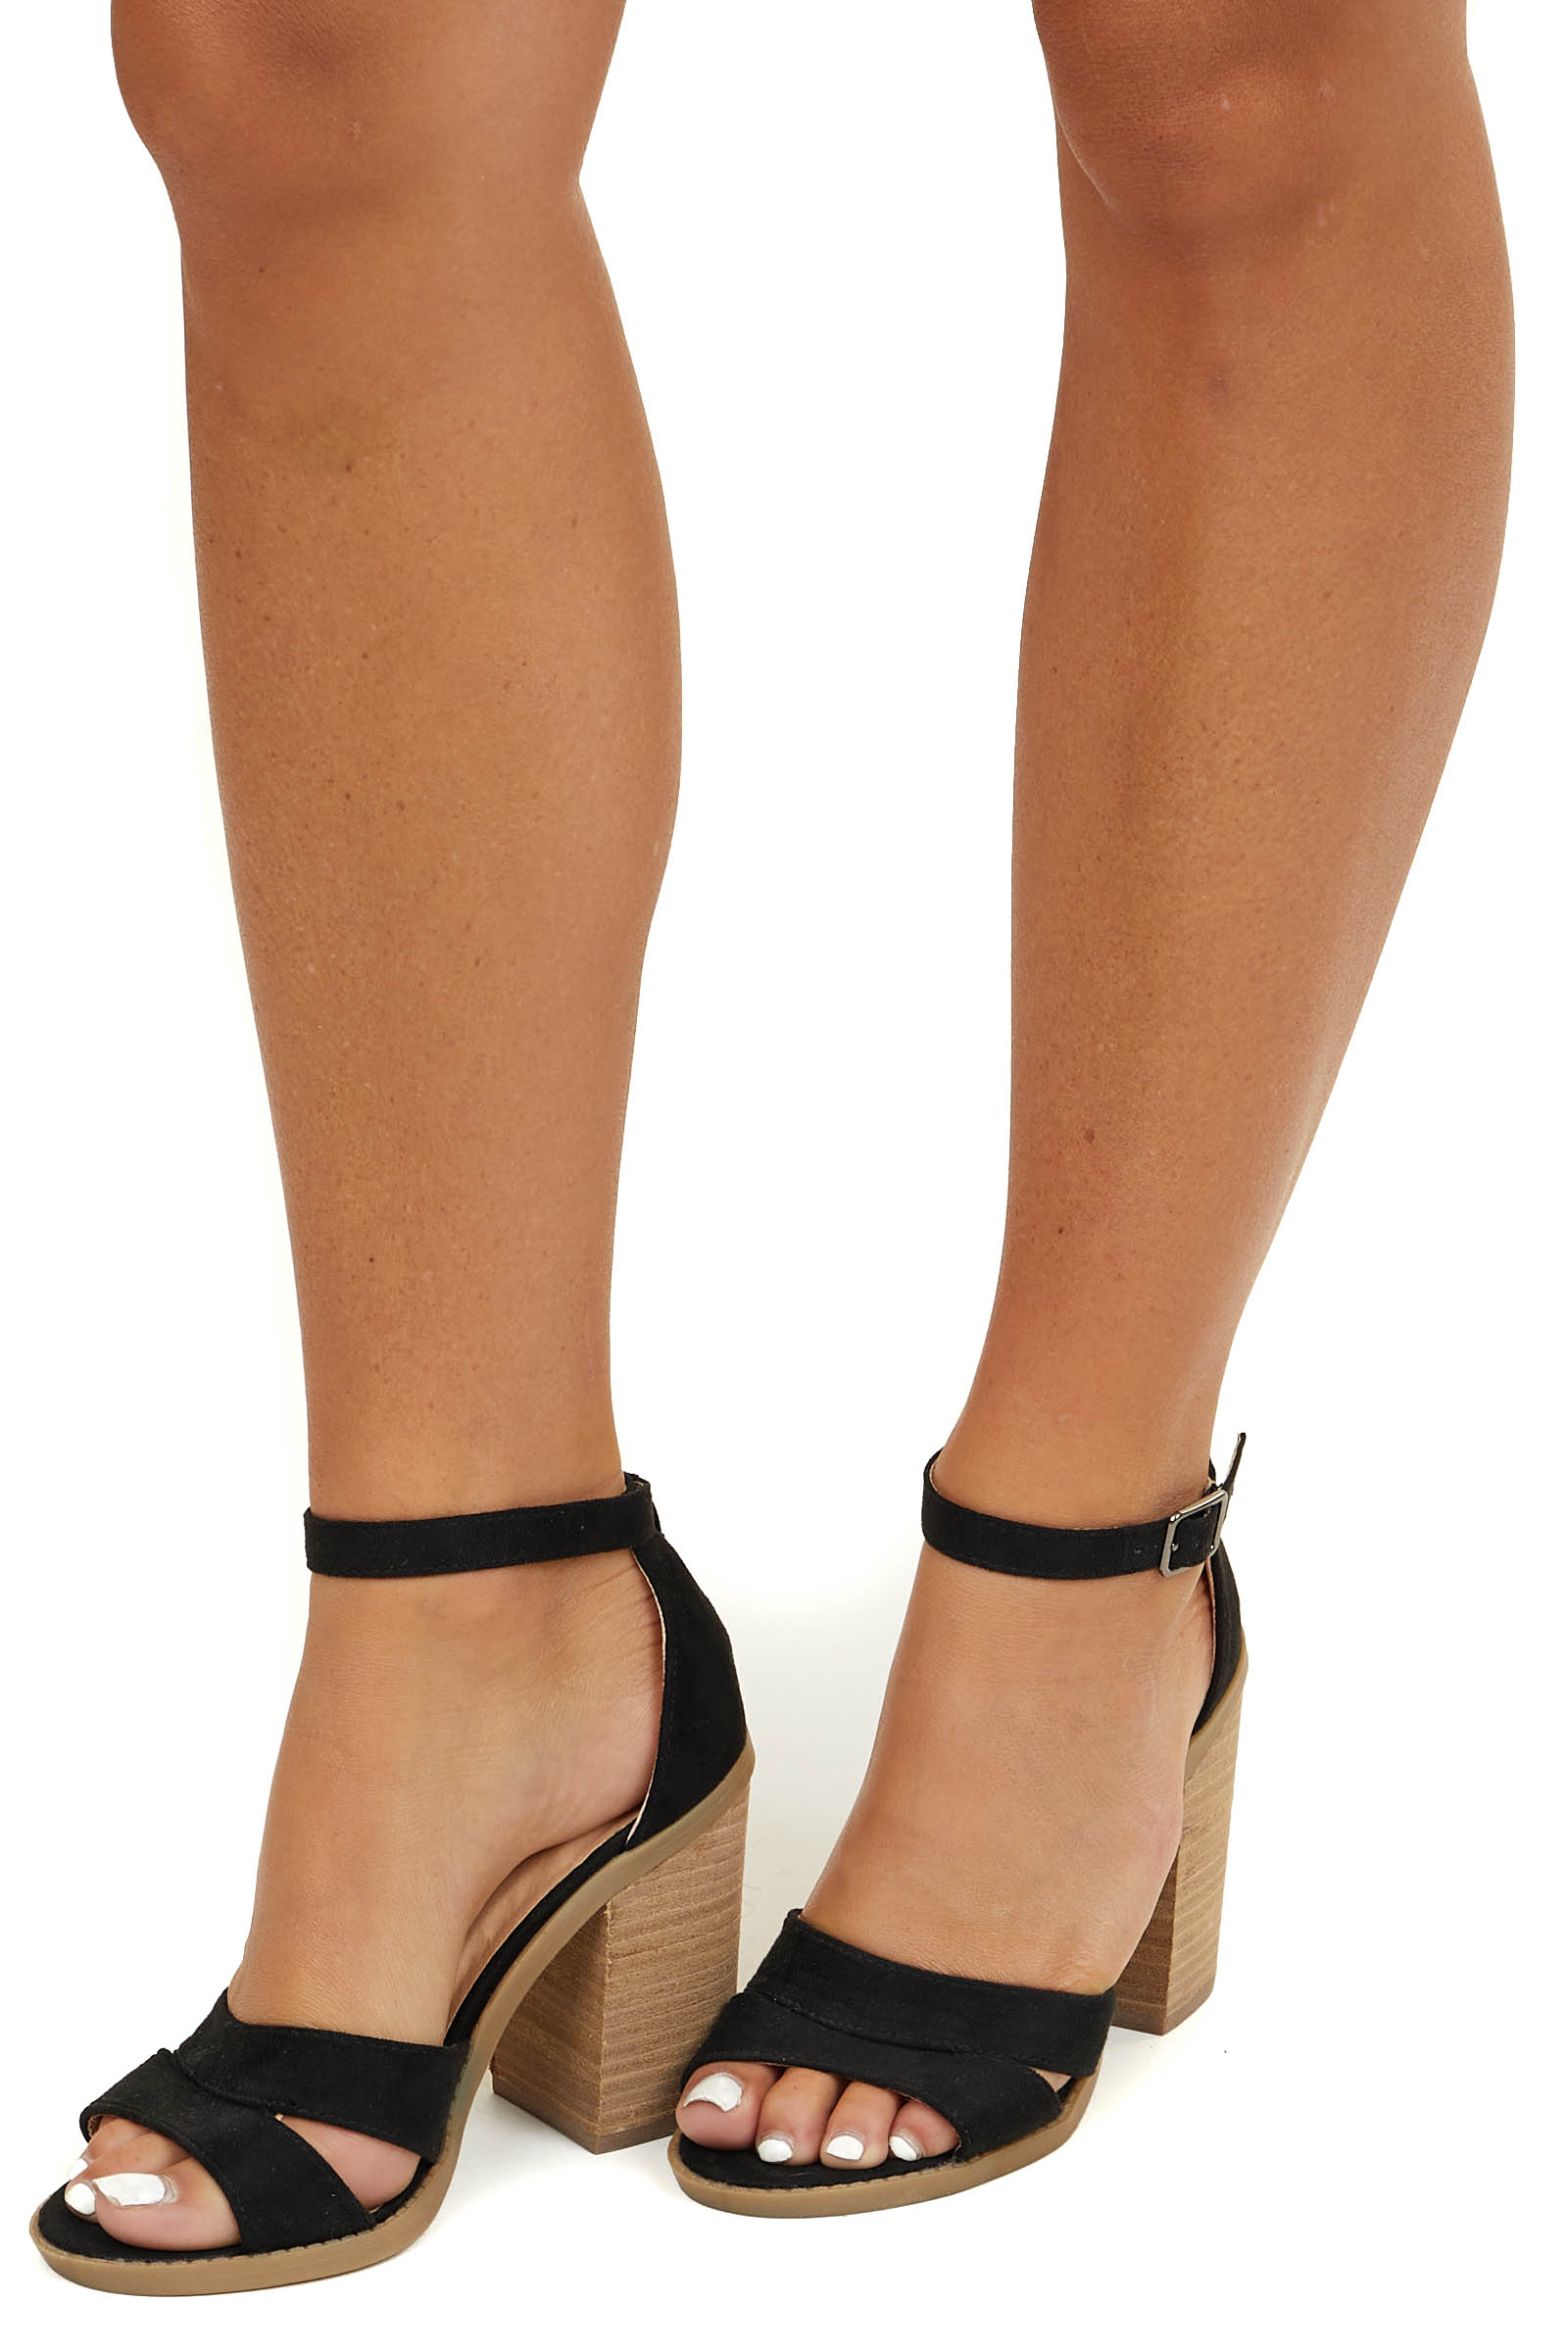 Black Faux Suede Strappy High Heels with Buckle Closure